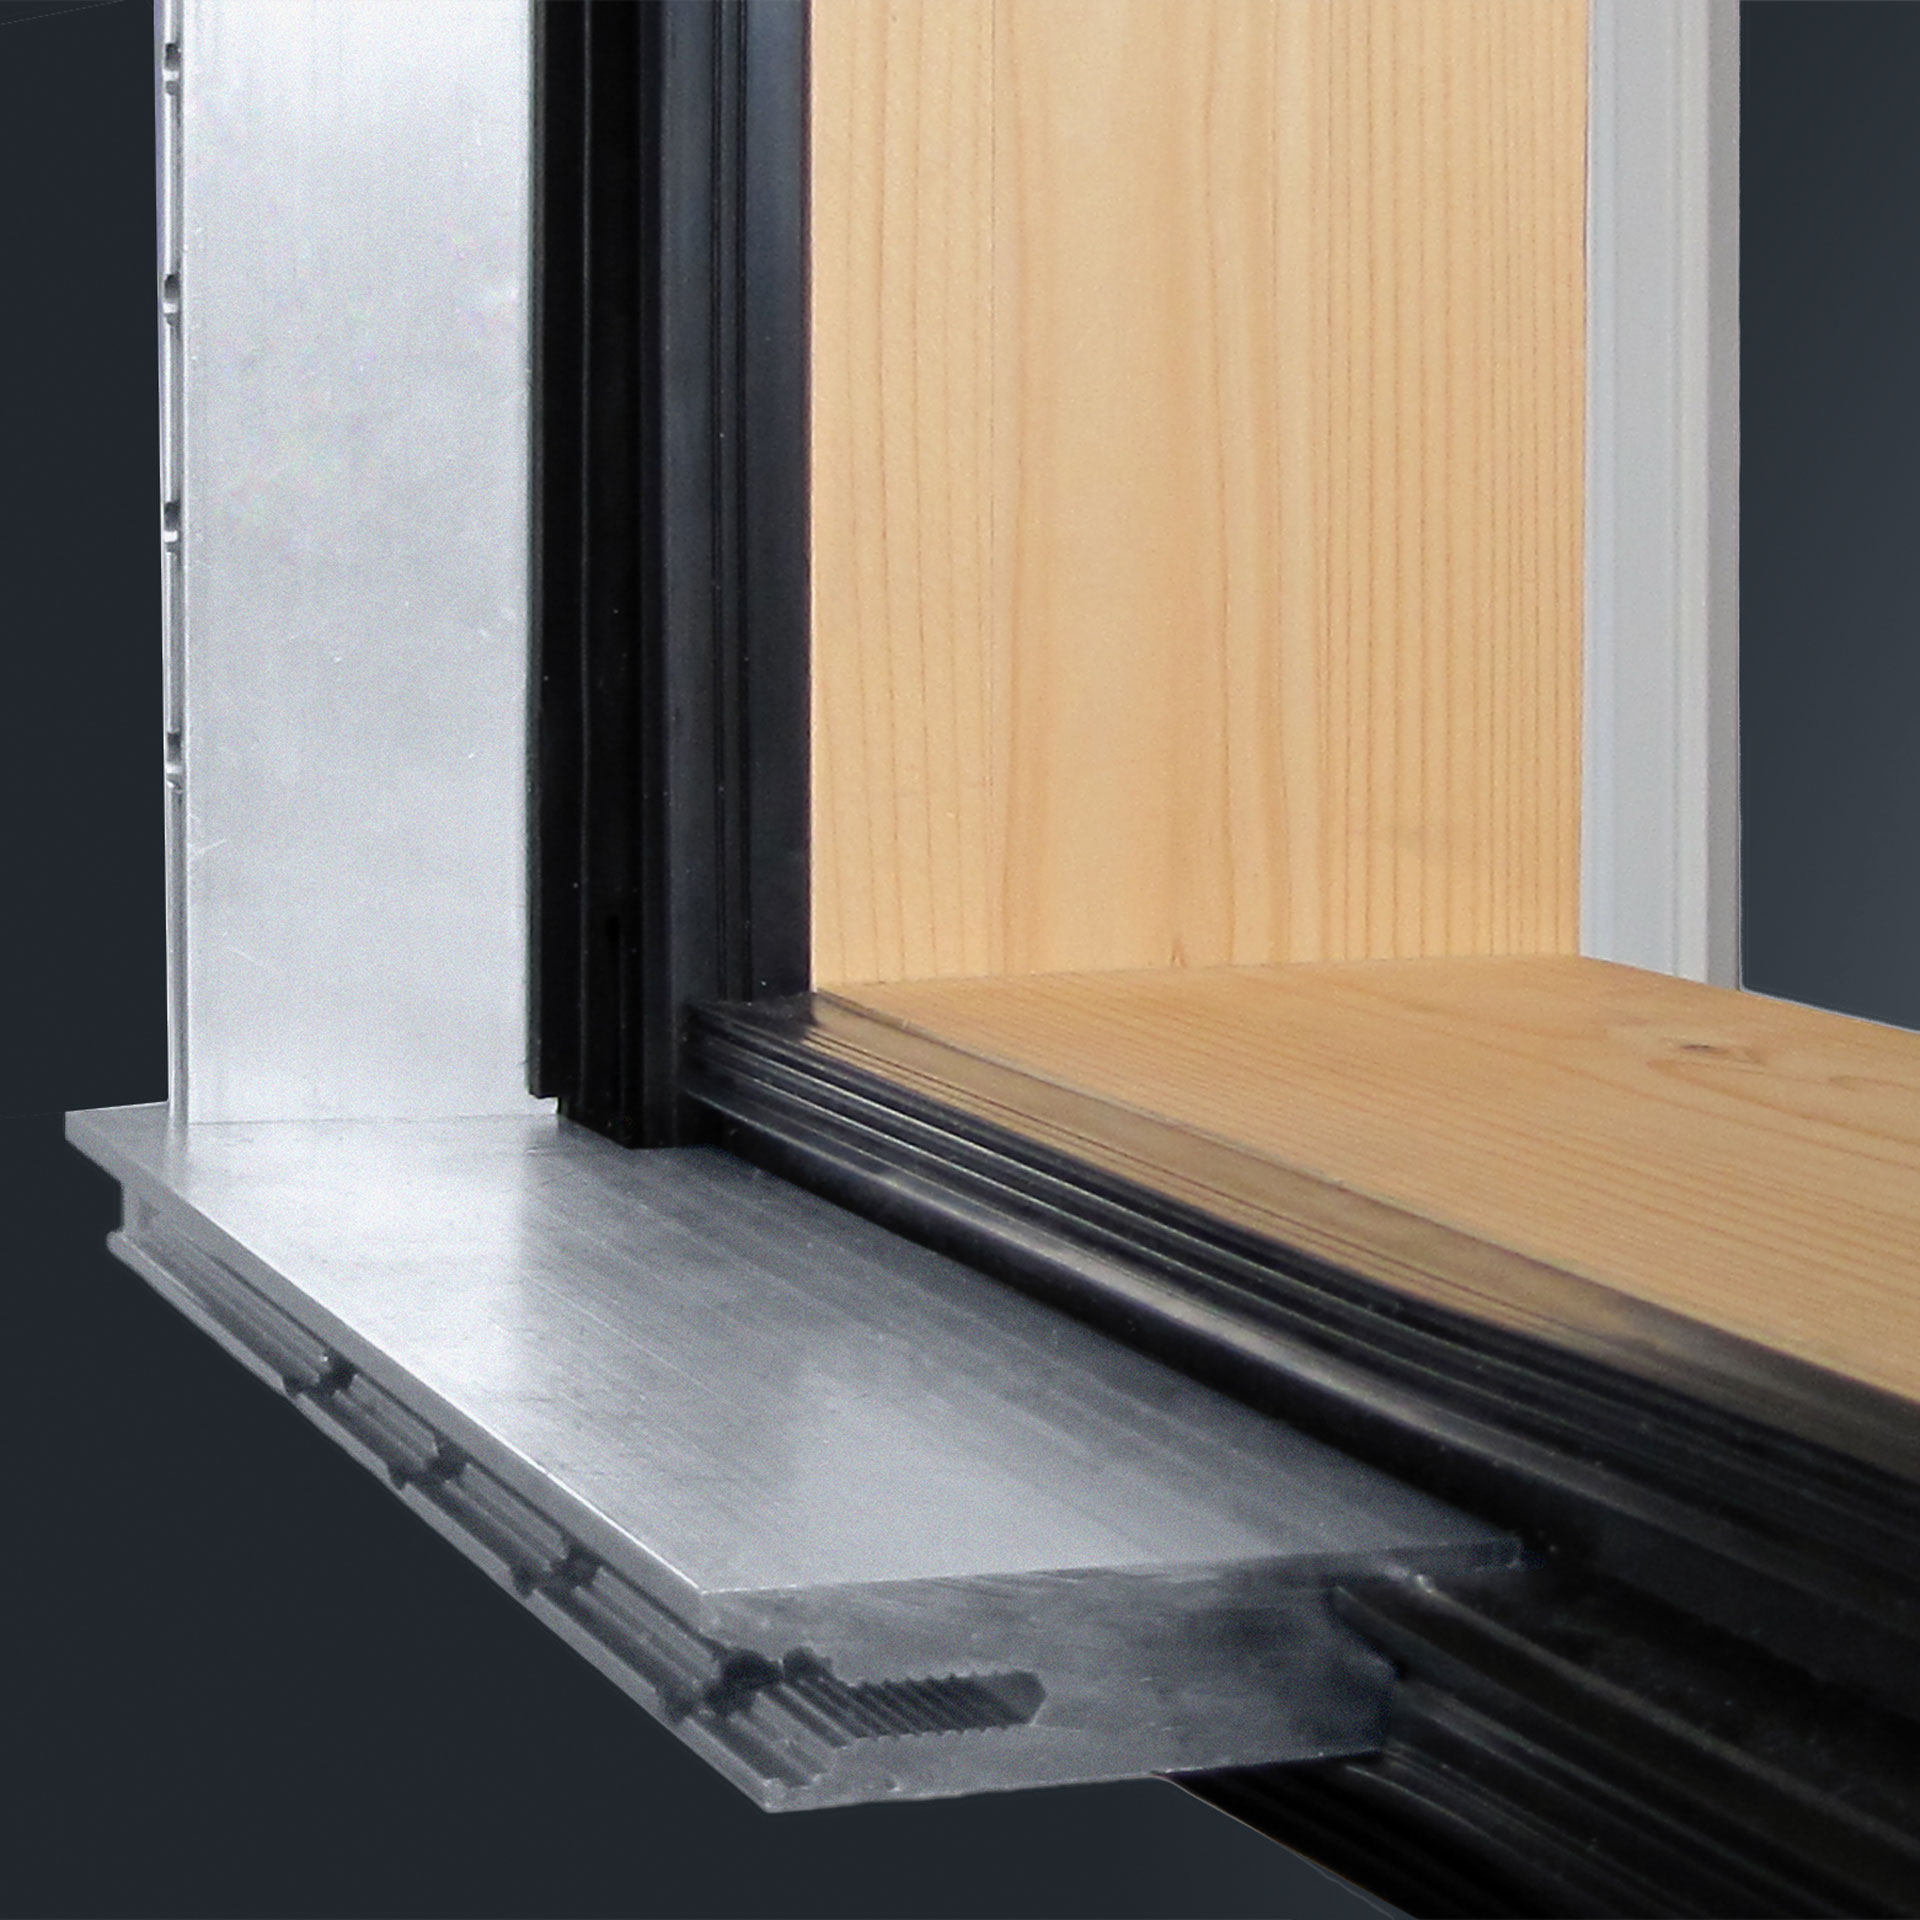 Mullion-transom walls with large glazed areas & ever-more-stringent demands in terms of thermal insulation and safety result in increasingly large and heavy panes of glass. GUTMANN LARA Heavy Load is constructed to bear increasingly heavy weights of glass